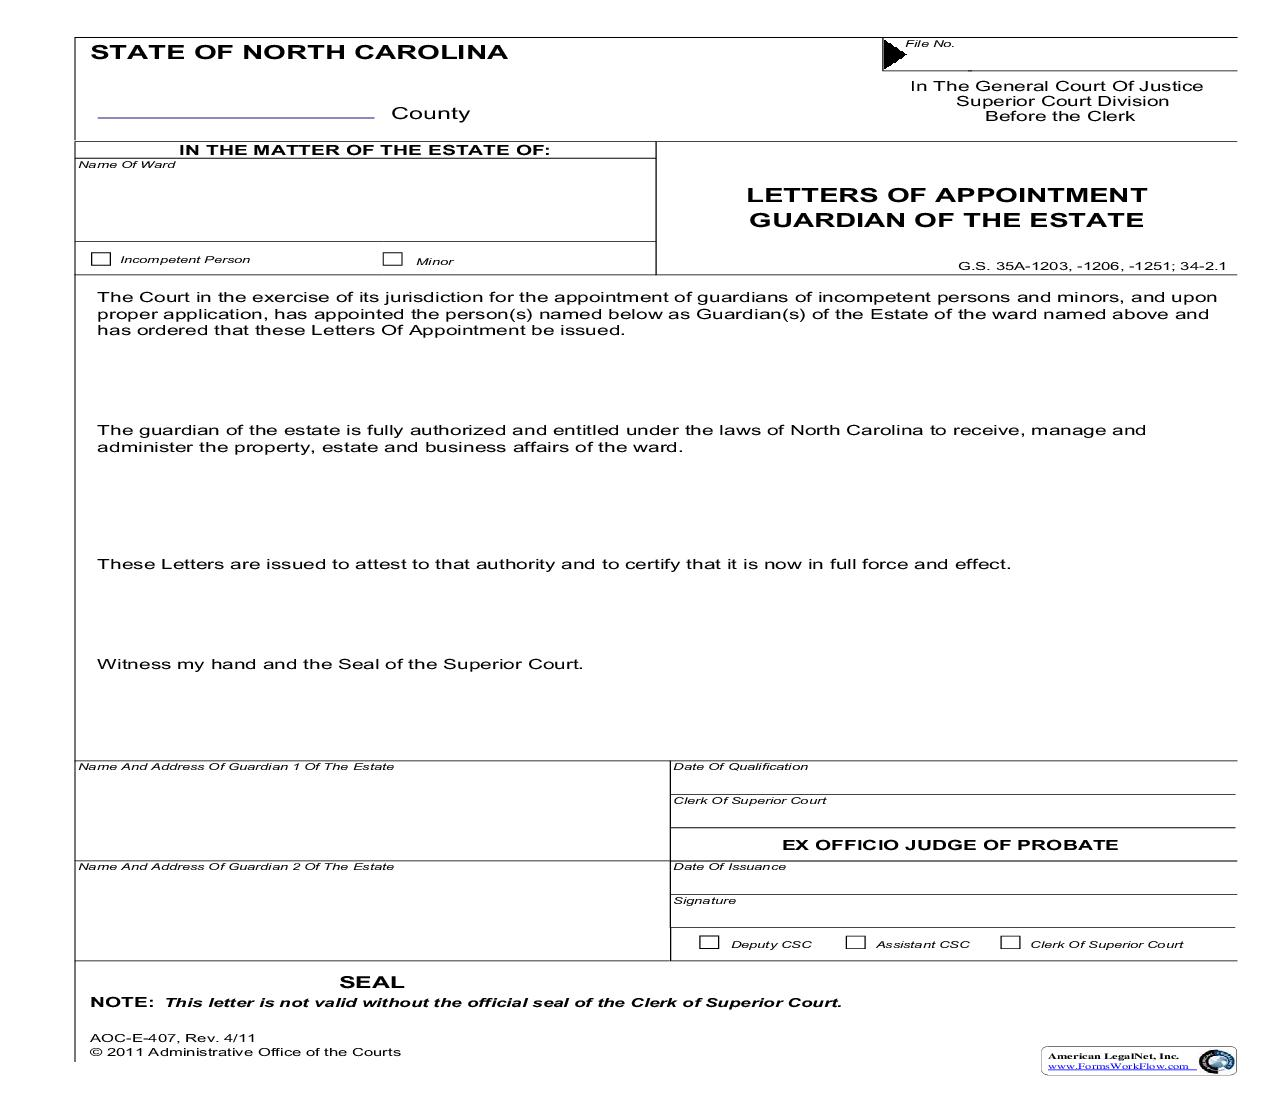 Letters Of Appointment Guardian Of The Estate {E-407}   Pdf Fpdf Doc Docx   North Carolina